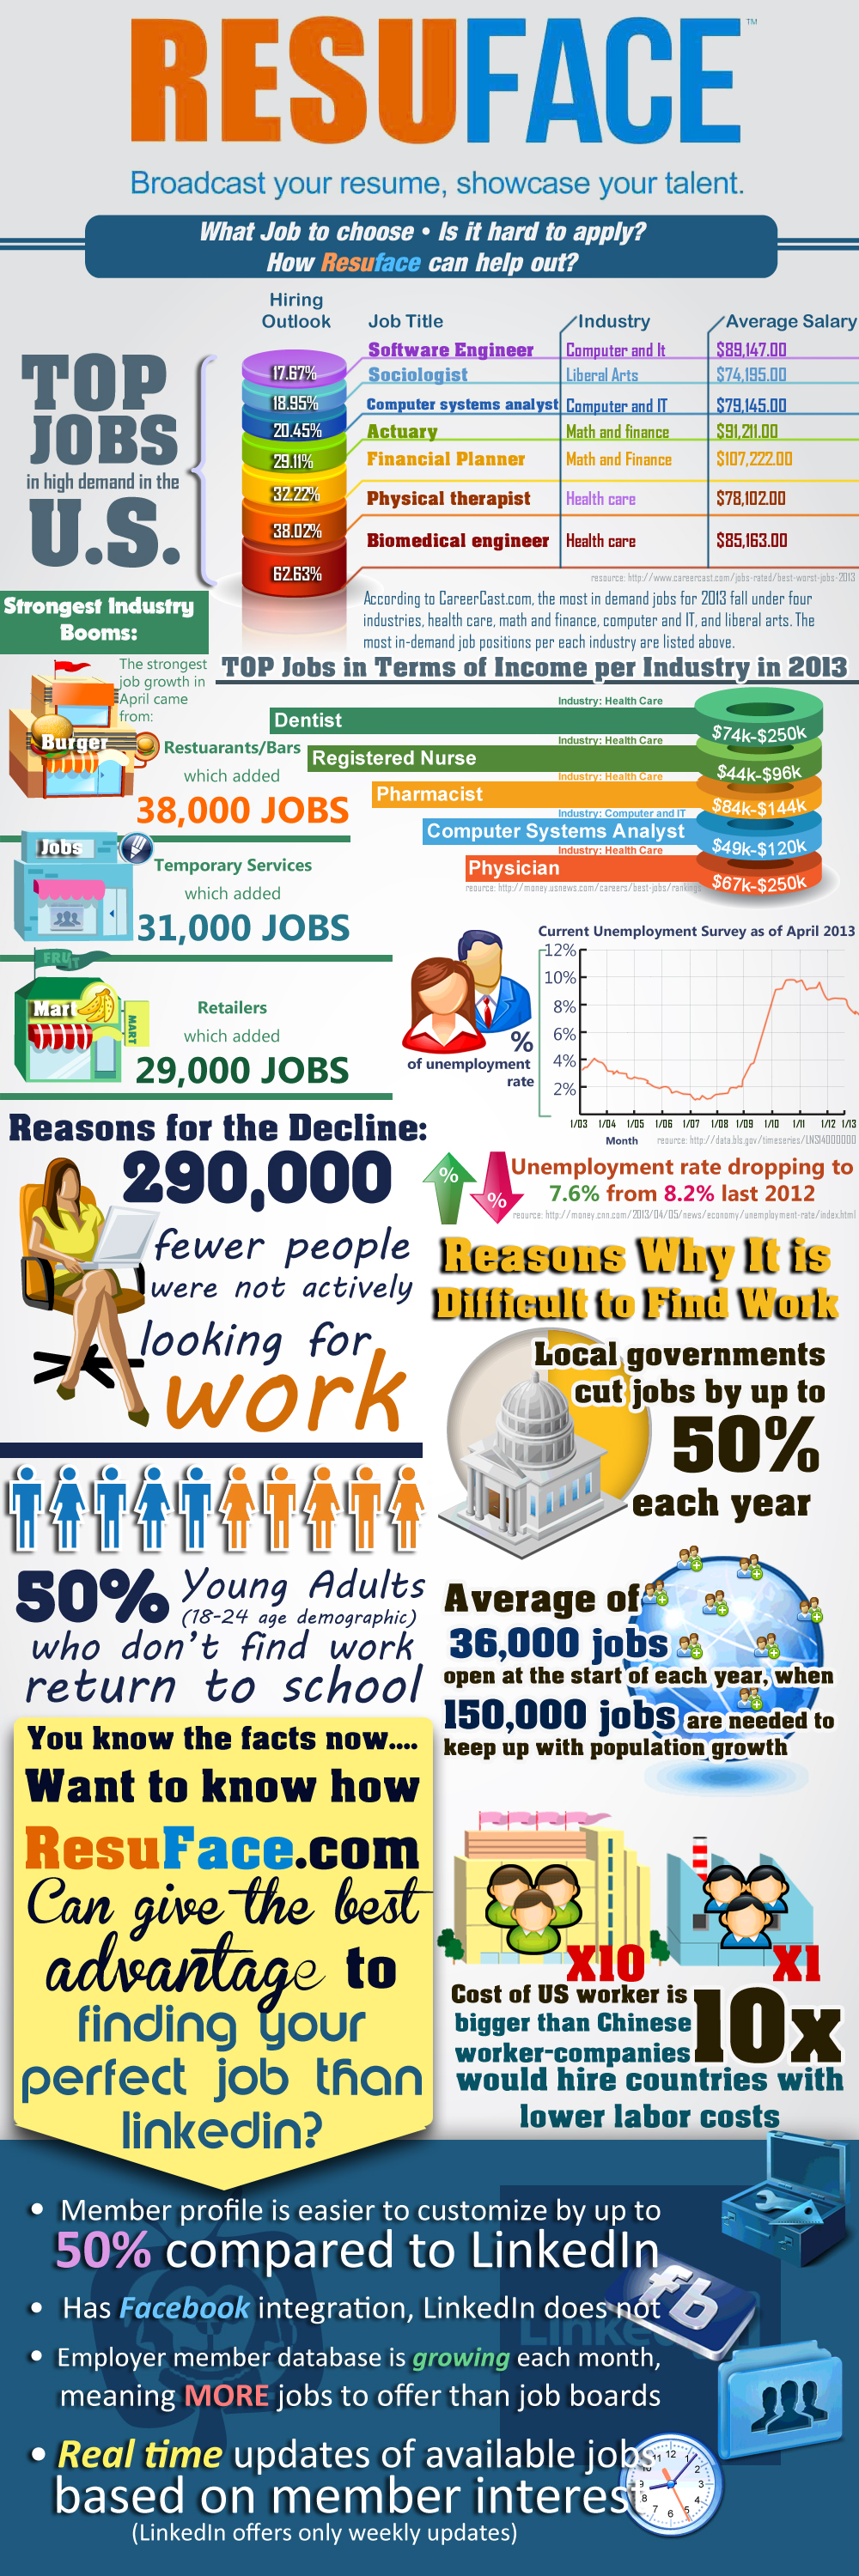 Resuface Infographics: US Jobs Study. Learn more about Resuface.com and it's job finder capability.